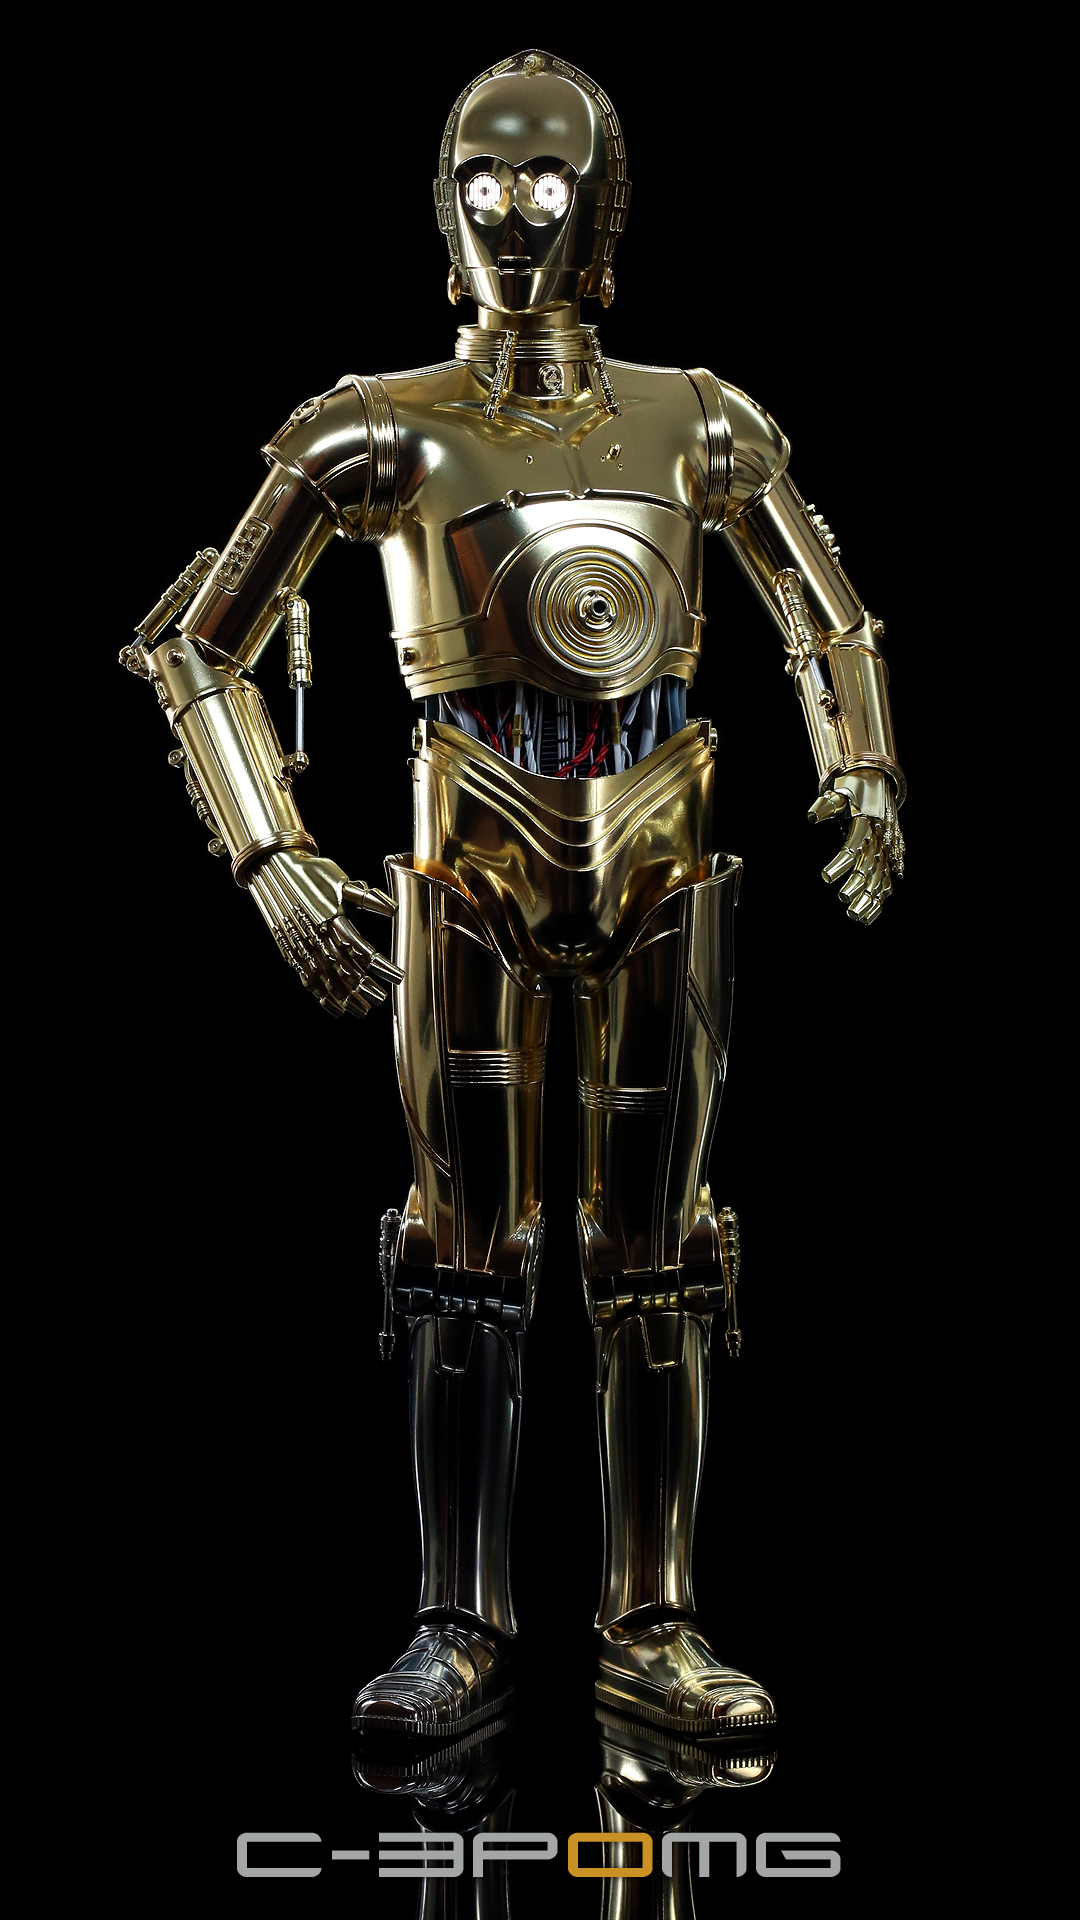 [Bandai] Star Wars: C-3PO - Perfect Model 1/6 scale - LANÇADO!!! - Página 2 C-3PO1200_zps241cb043